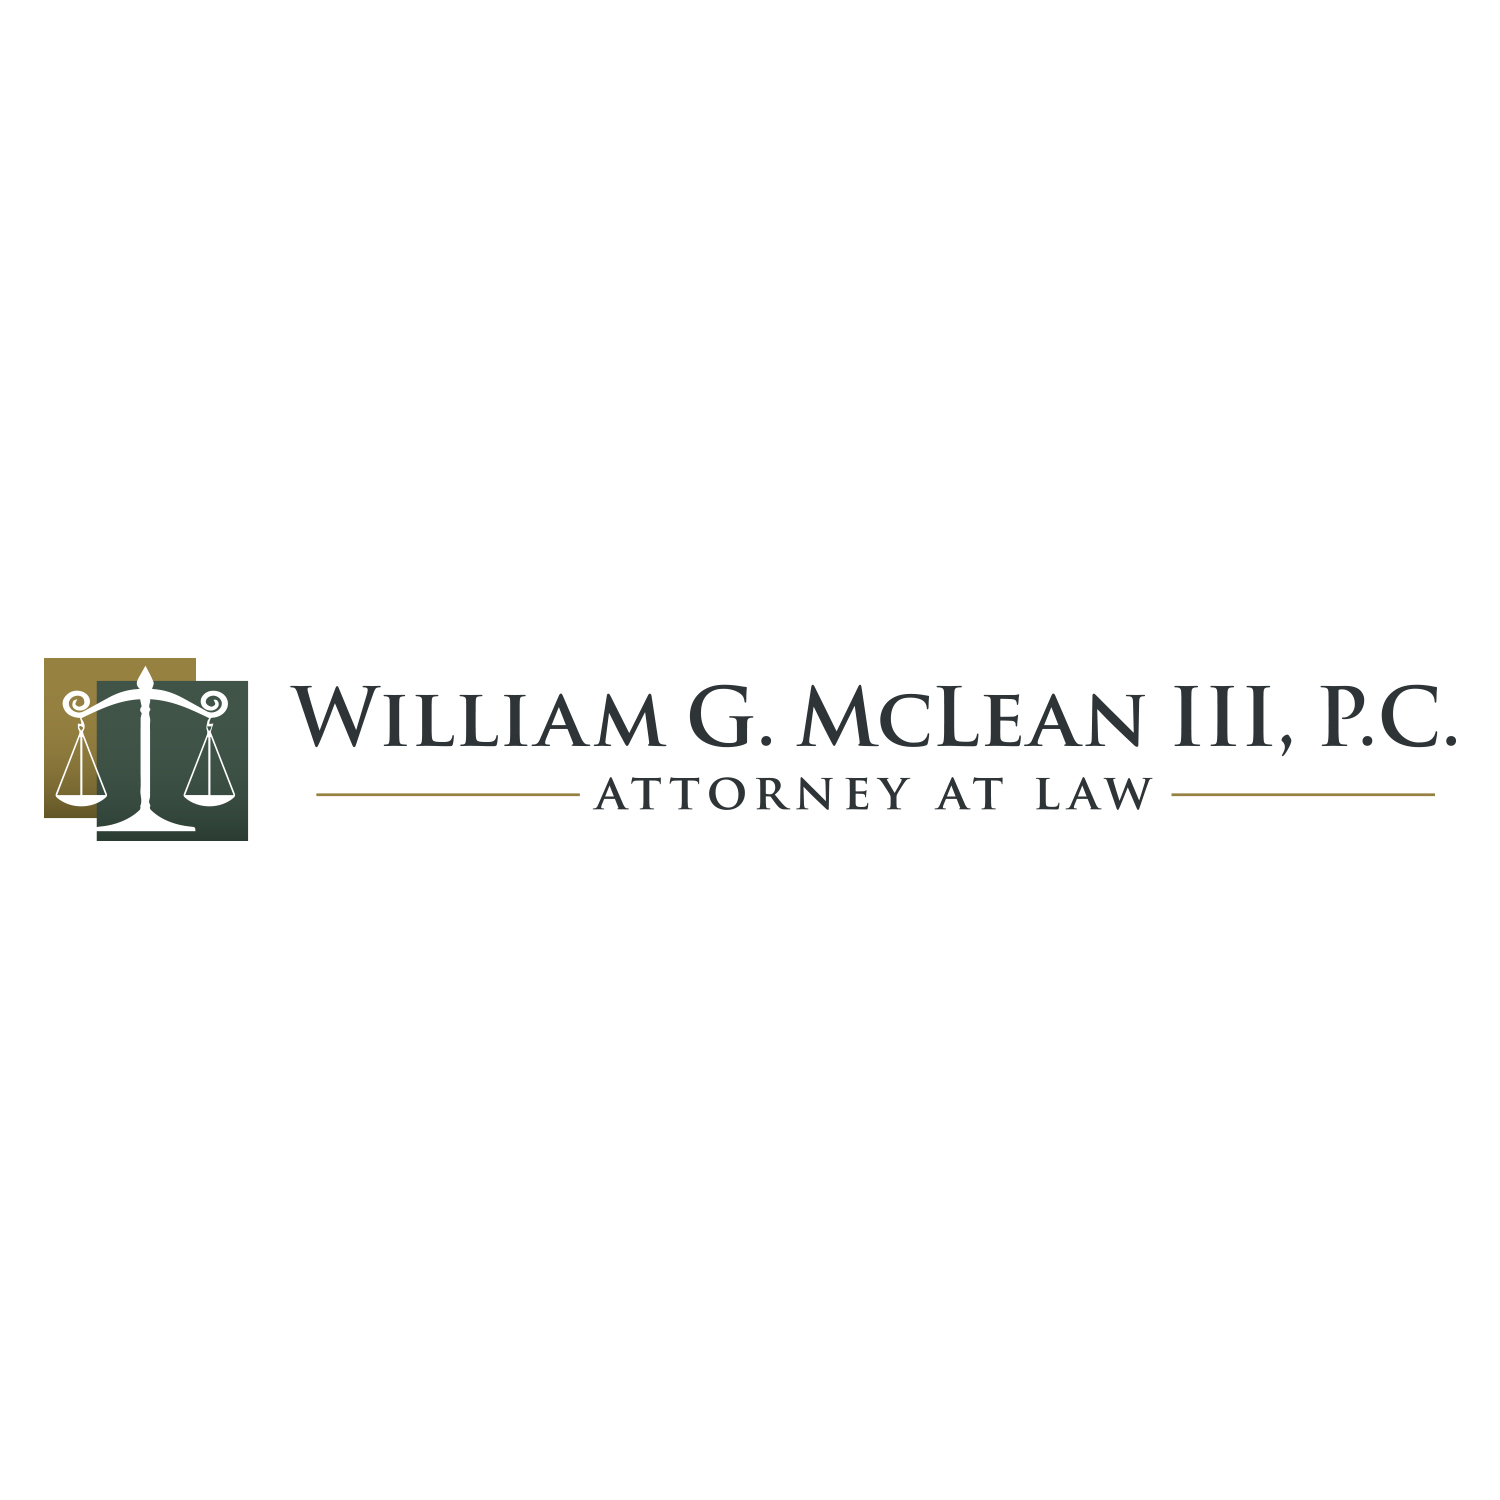 Law Office of William G. McLean III